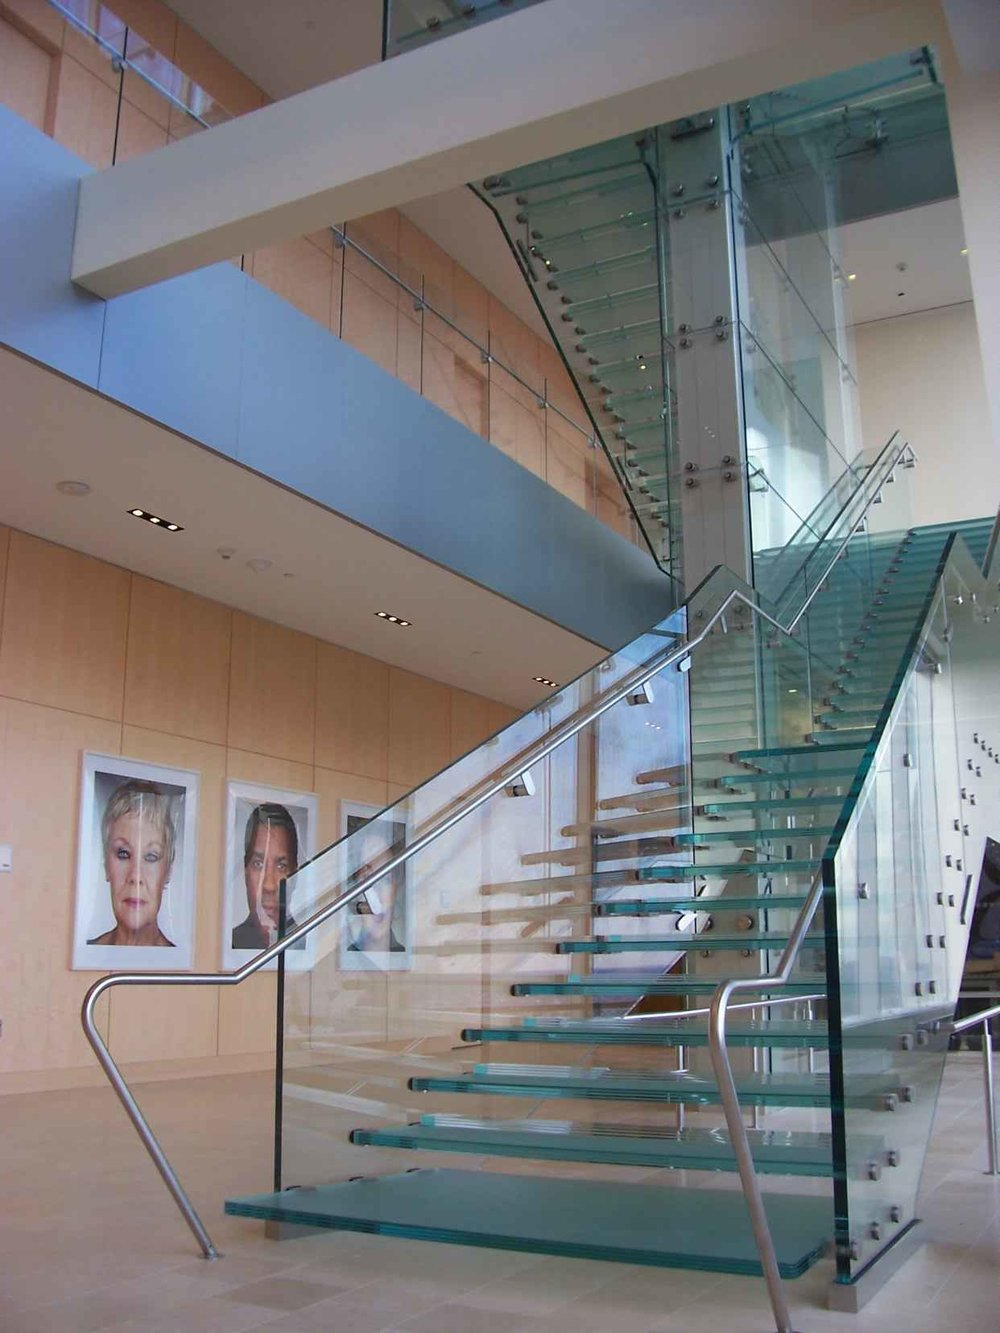 51 Stair with art 1.jpg